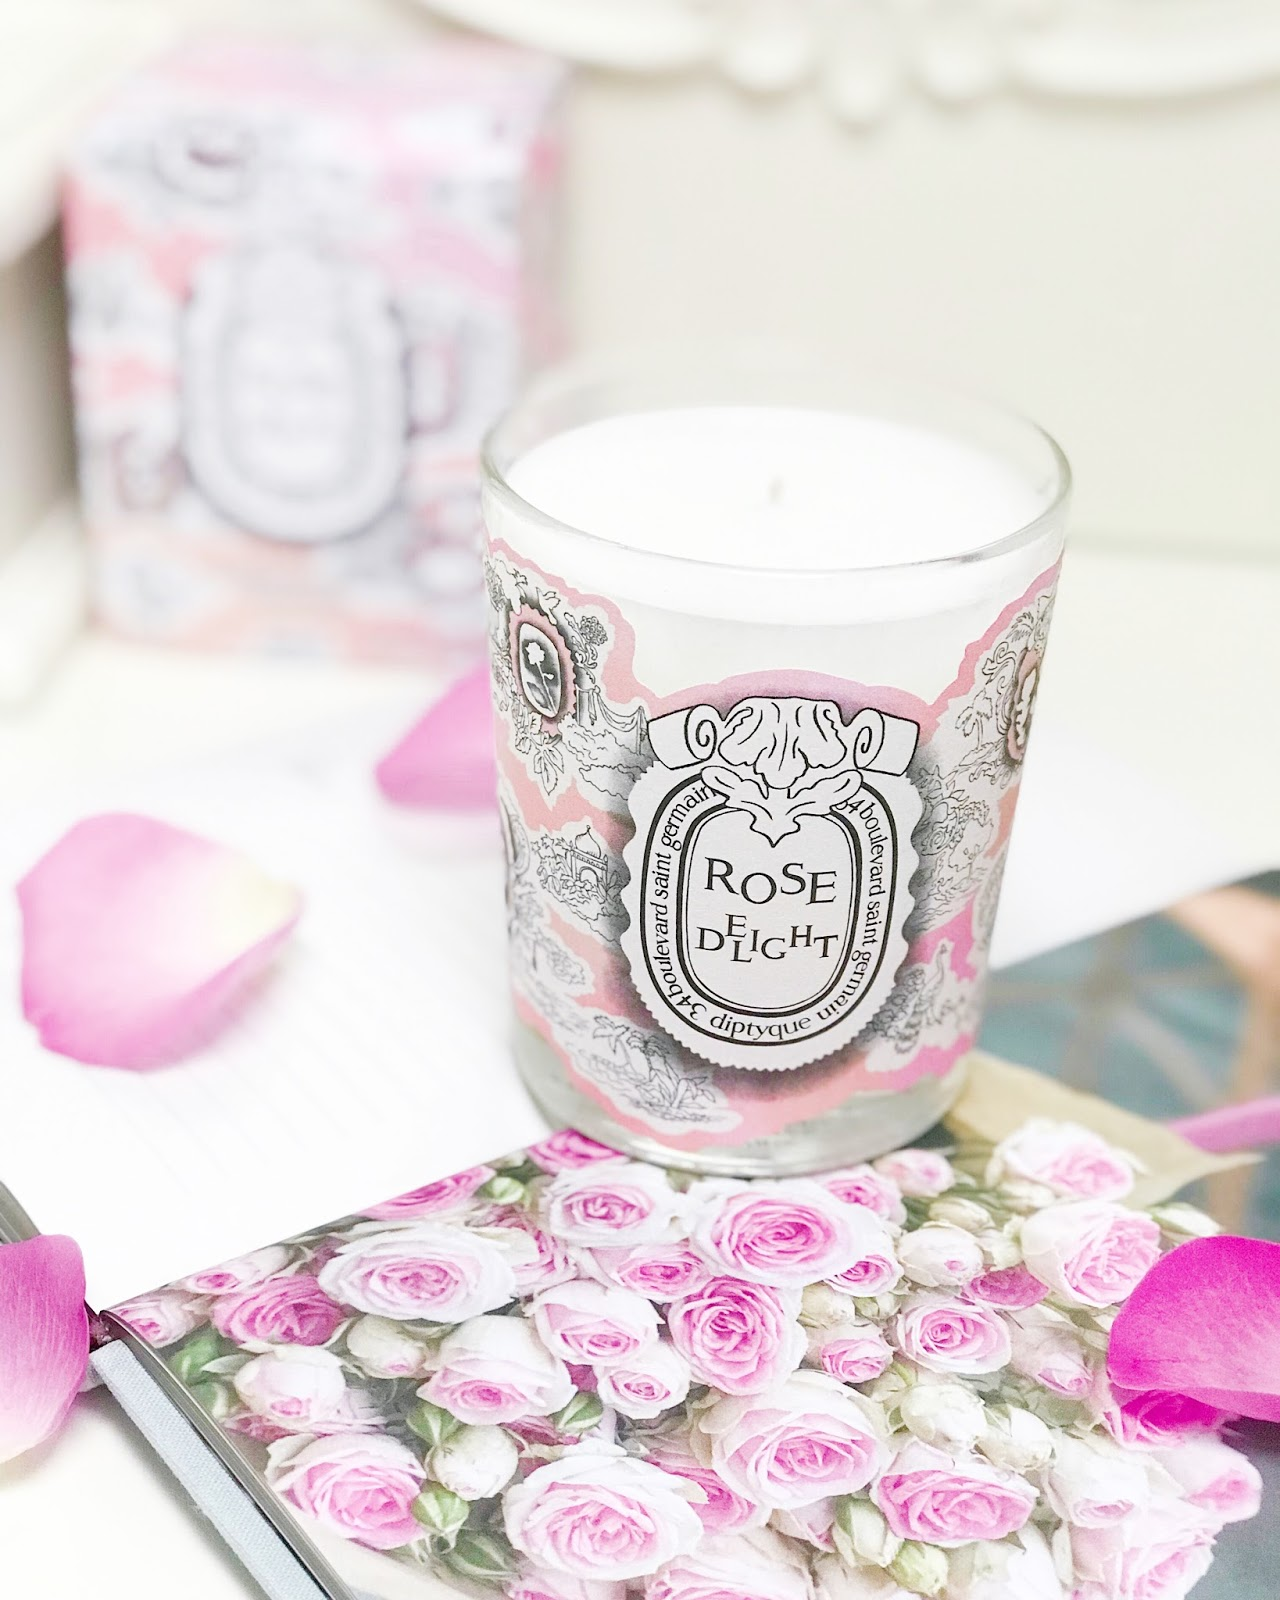 Diptyque Rose Delight Candle Review